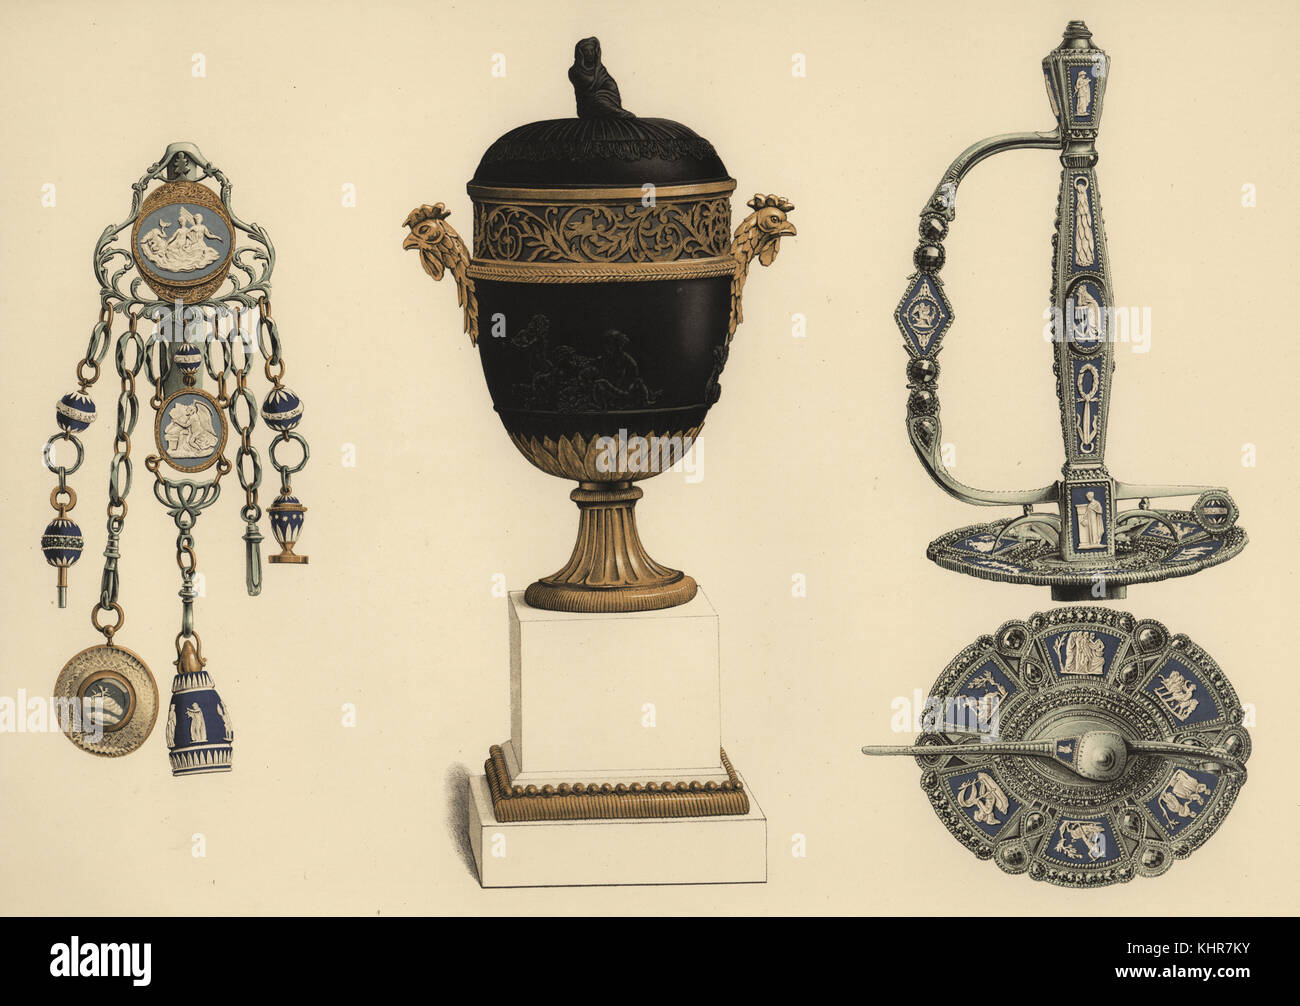 Mounted Wedgwood ceramics: chatelaine in steel and gold, vase formed of basalt sucrier, ormolu and marble, and court - Stock Image